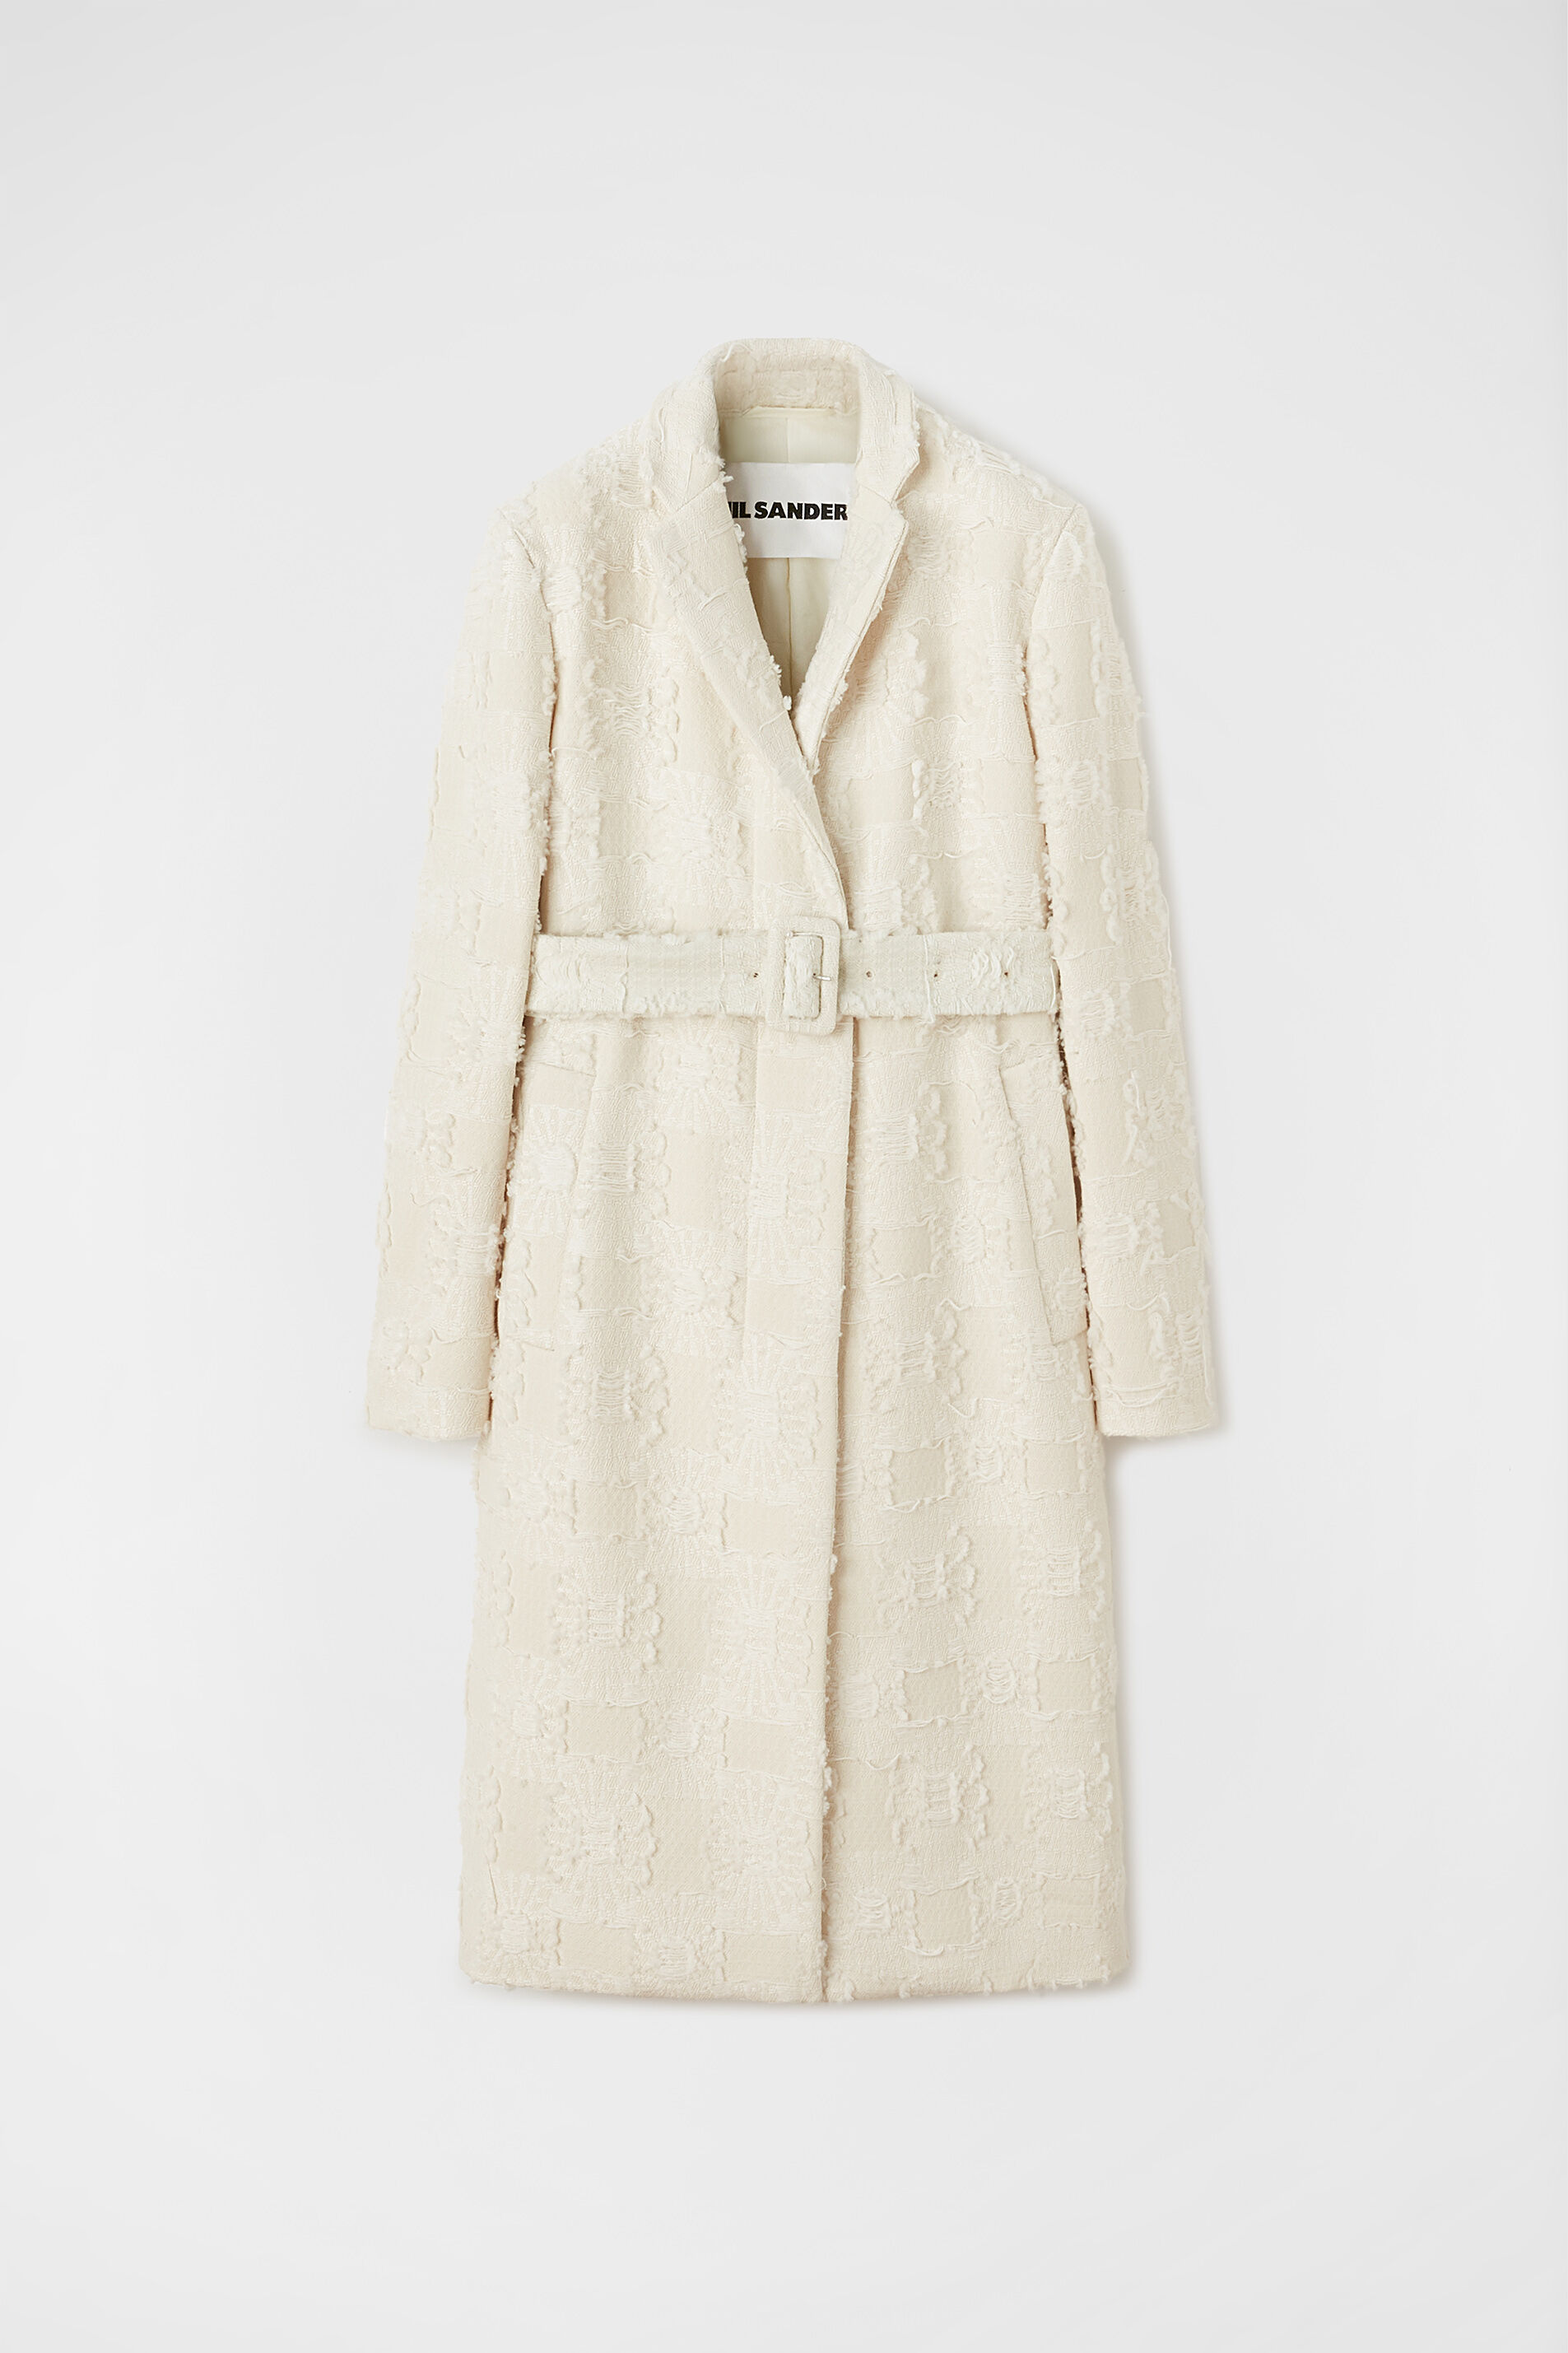 Padded Coat, beige, large